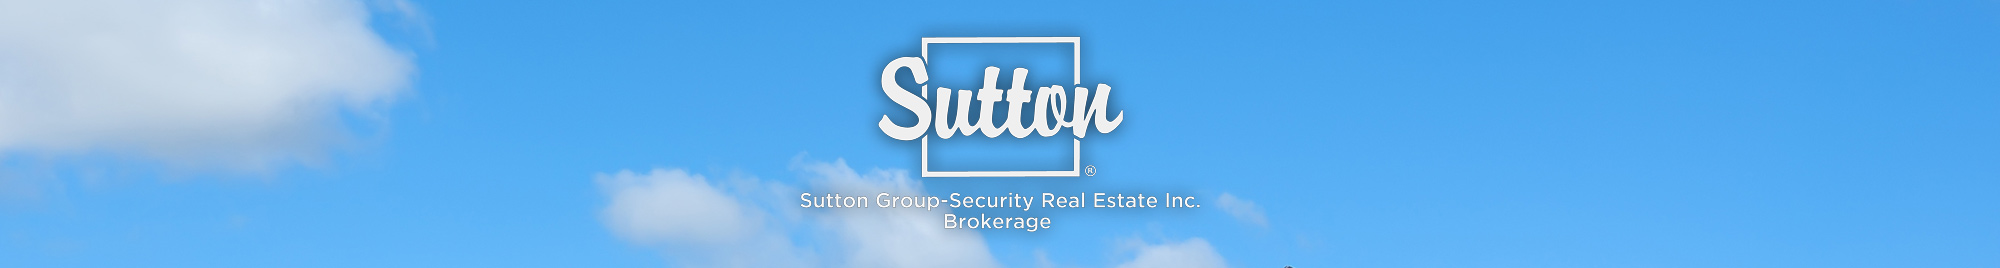 Sutton Group-Security Real Estate Inc.